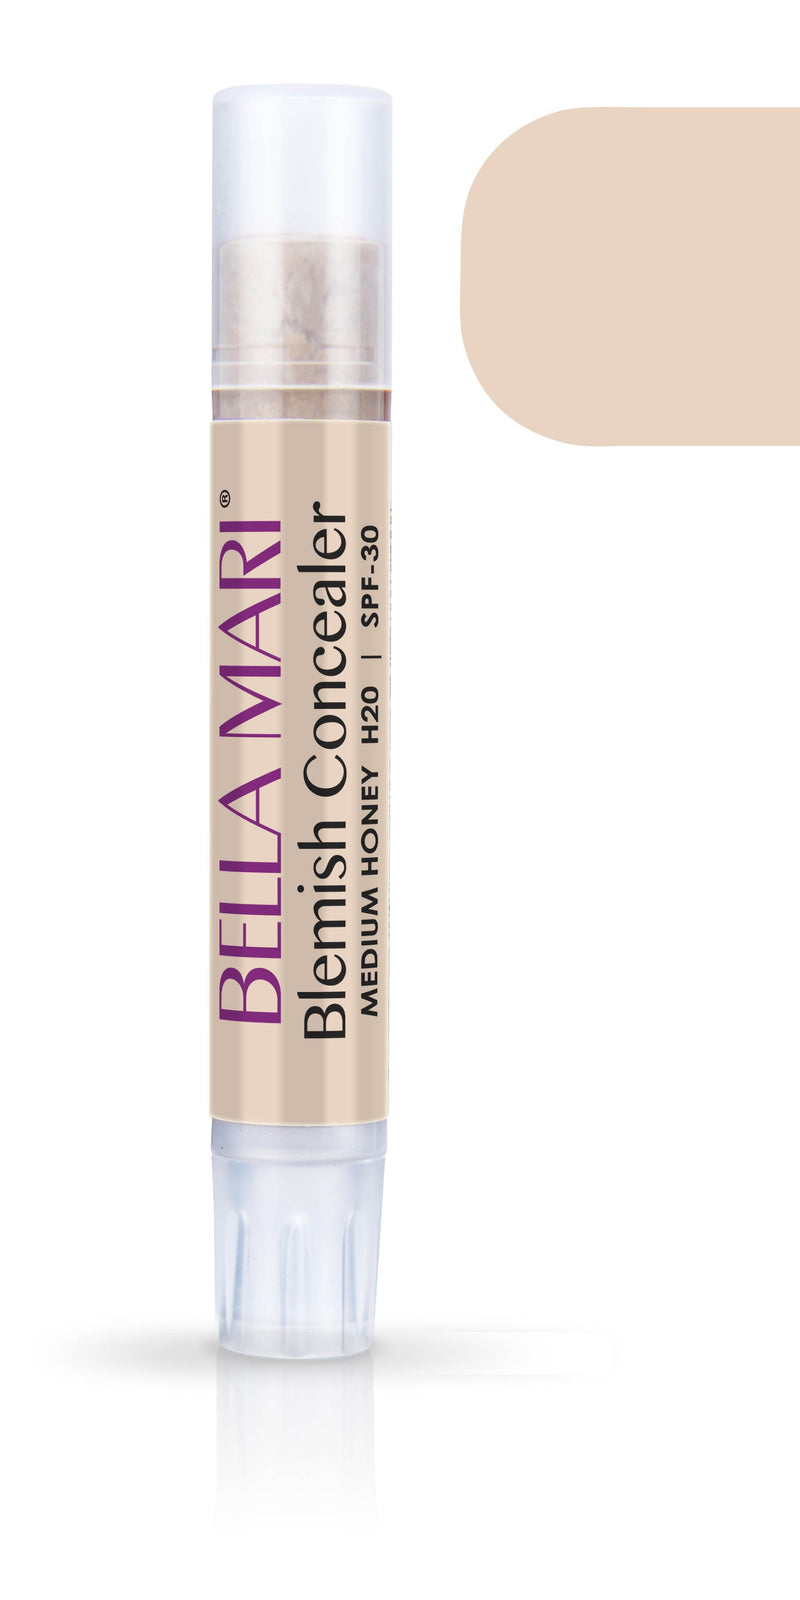 Bella Mari Natural Blemish Concealer Stick; 0.1floz - Bella Mari Natural Blemish Concealer Stick; 0.1floz - Medium Honey